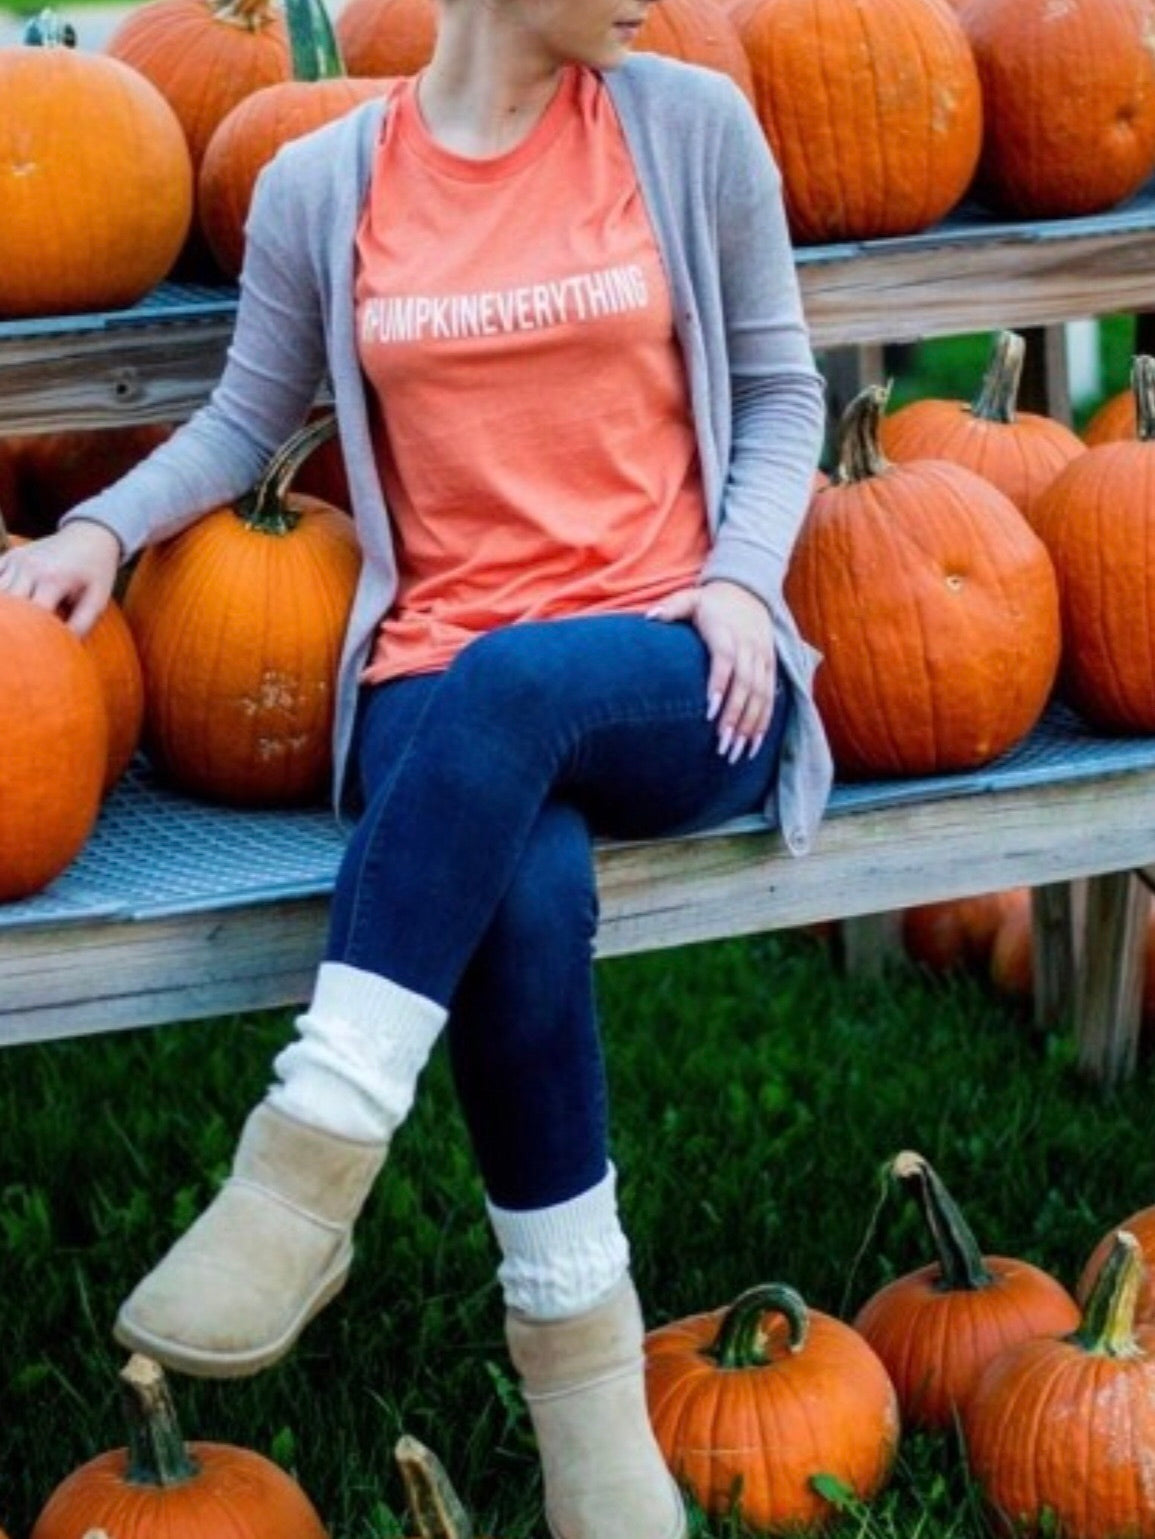 #pumpkineverything graphic tee